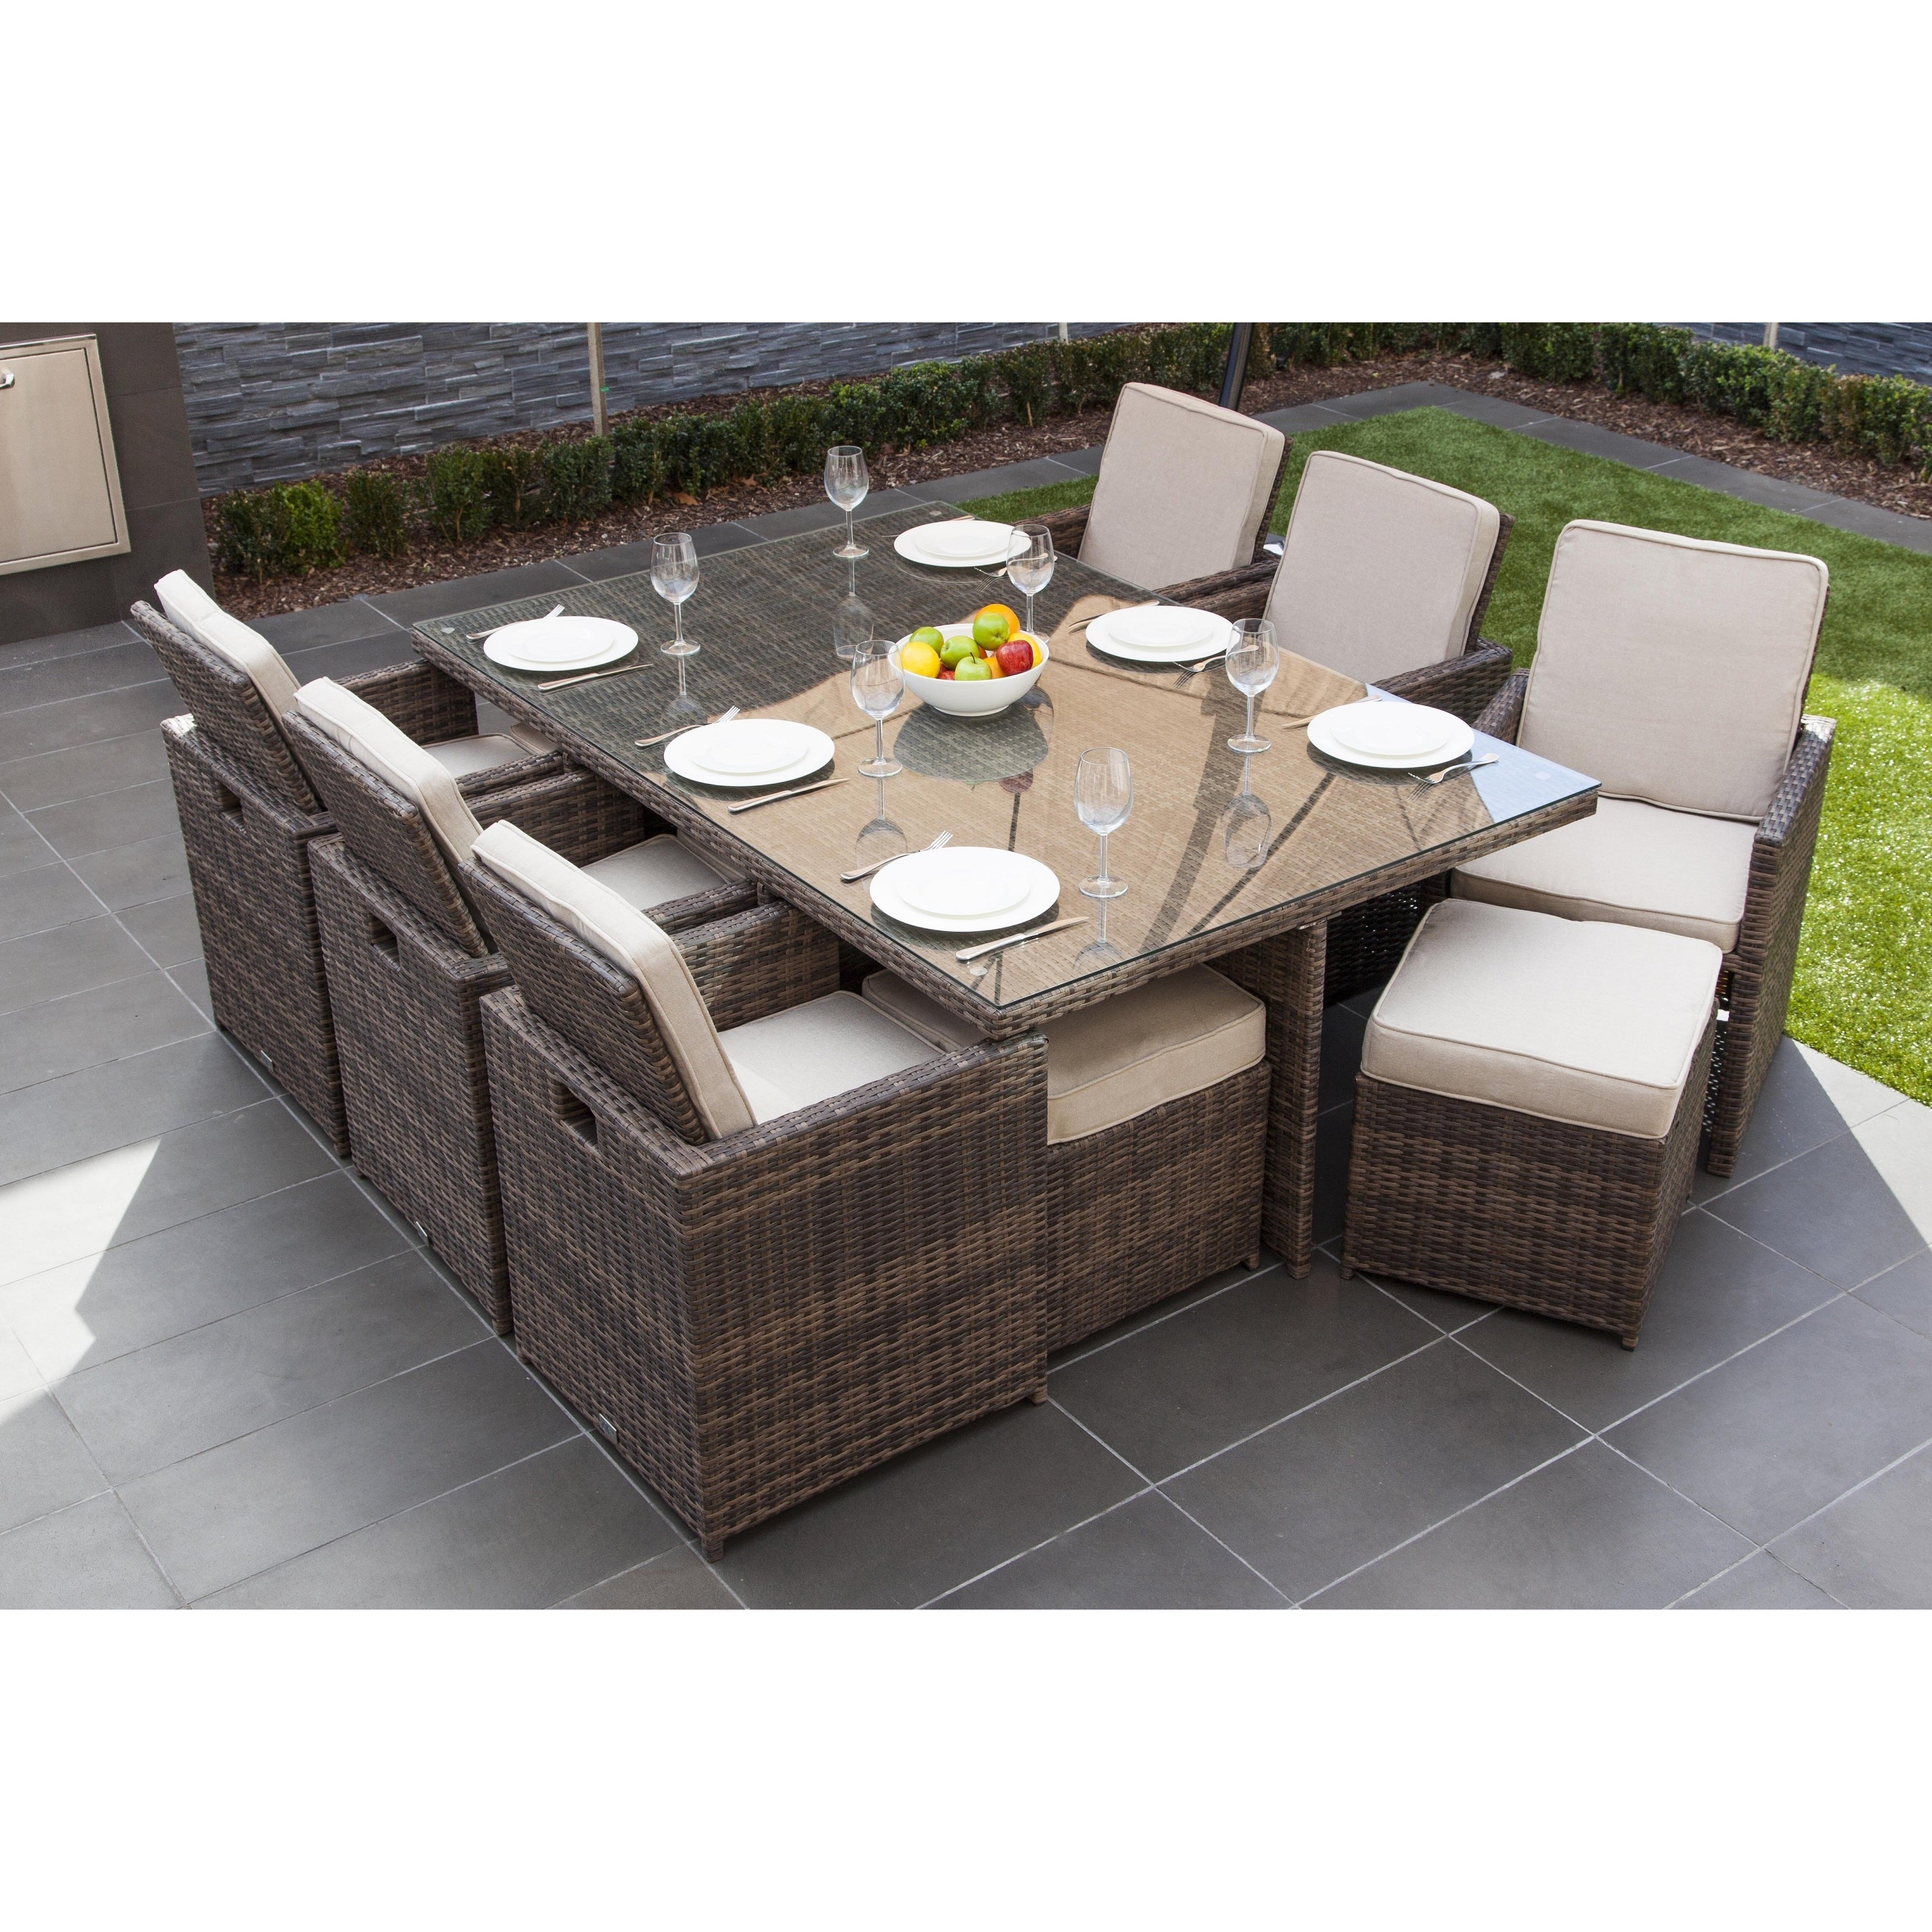 Shop Malta 11 Piece Outdoor Wicker Dining Table And Cushion Set By Direct Wicker Overstock 15963652